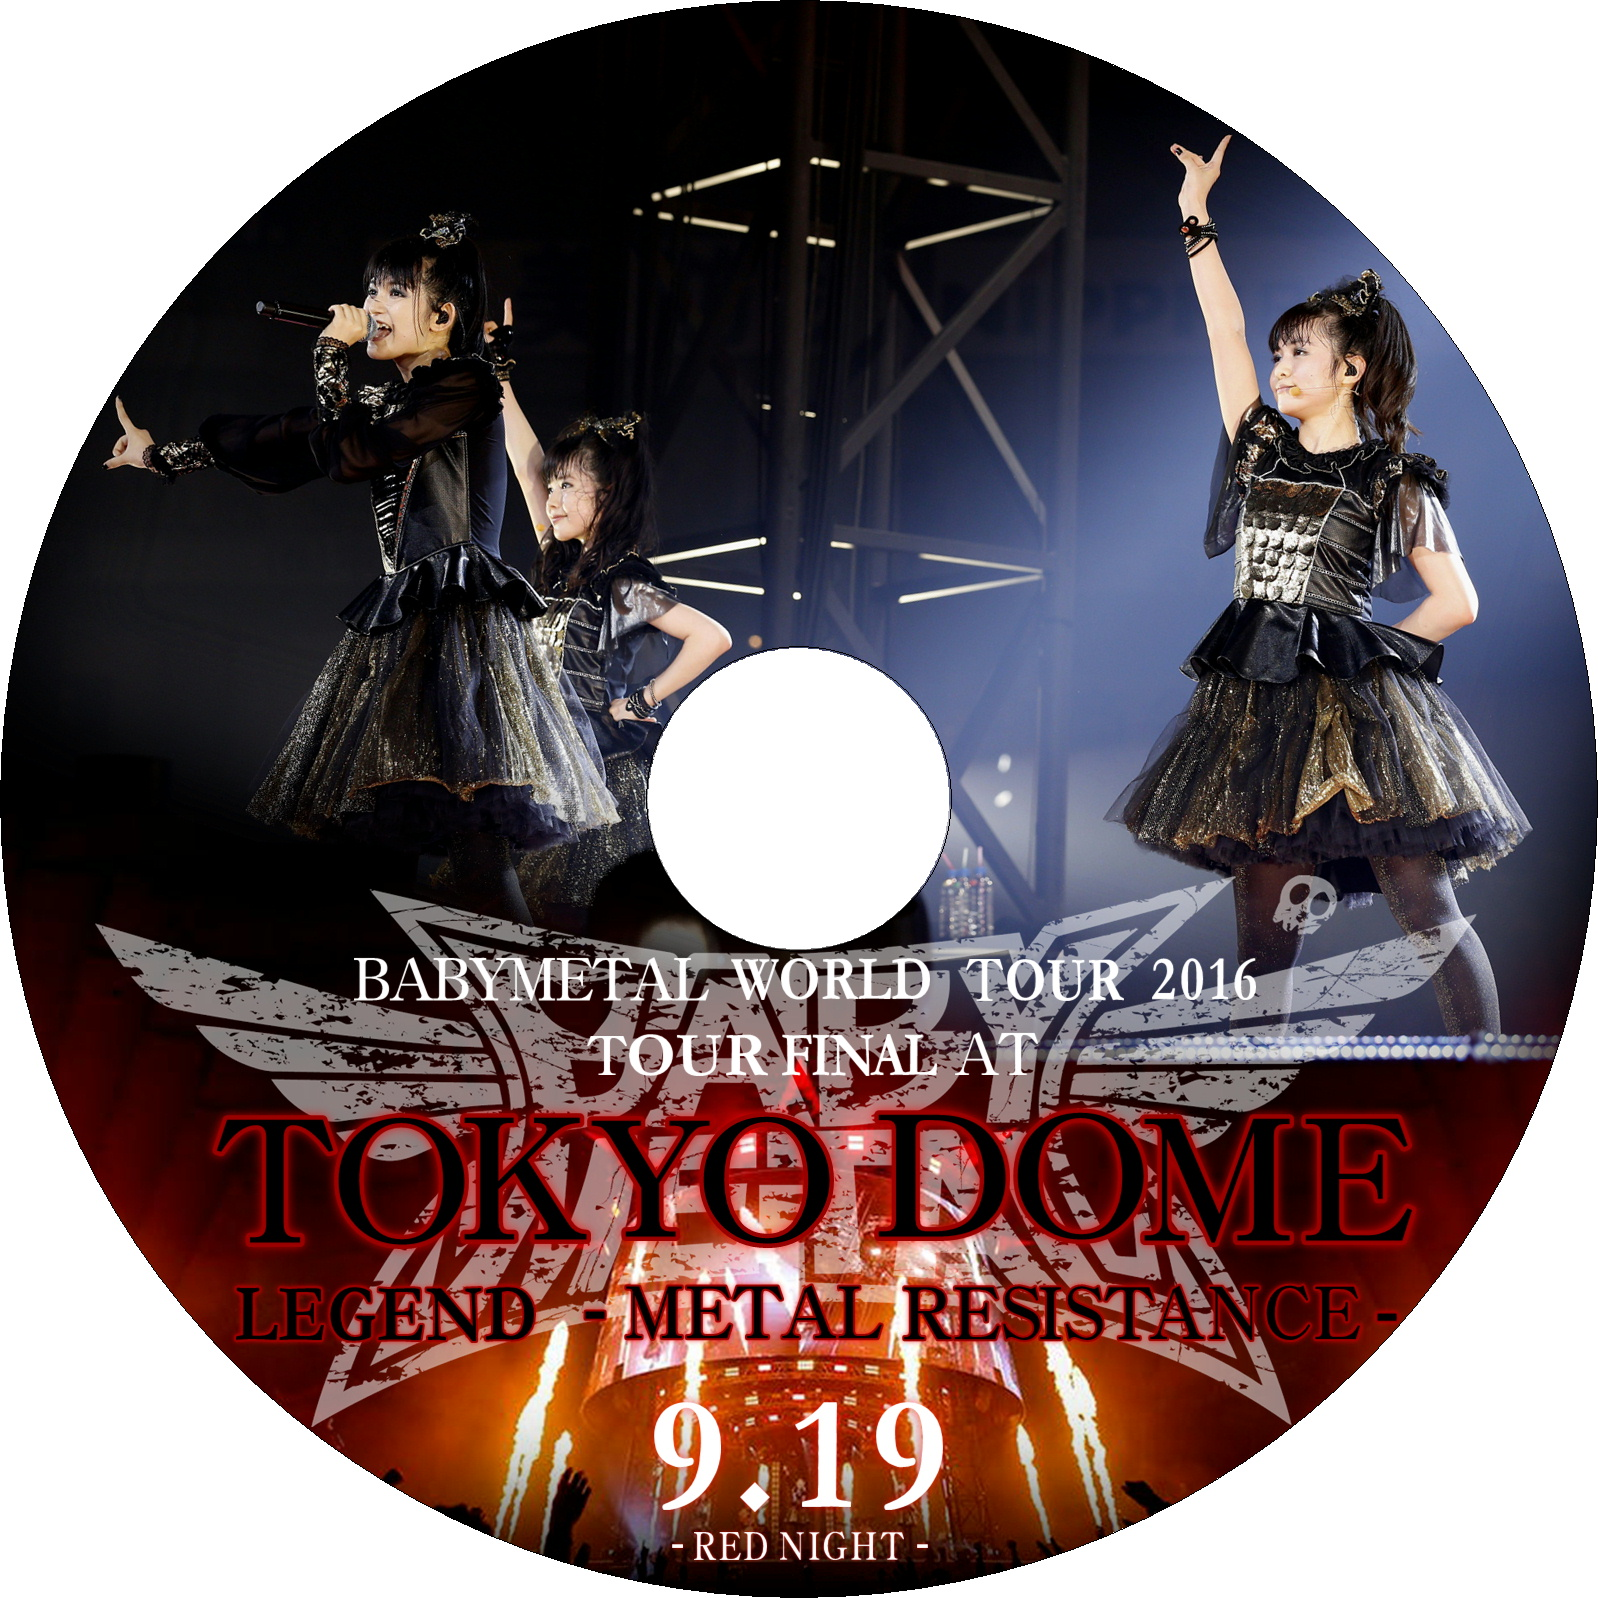 BABYMETAL WORLD TOUR 2016 LEGEND -METAL RESISTANCE- RED NIGHT ラベル